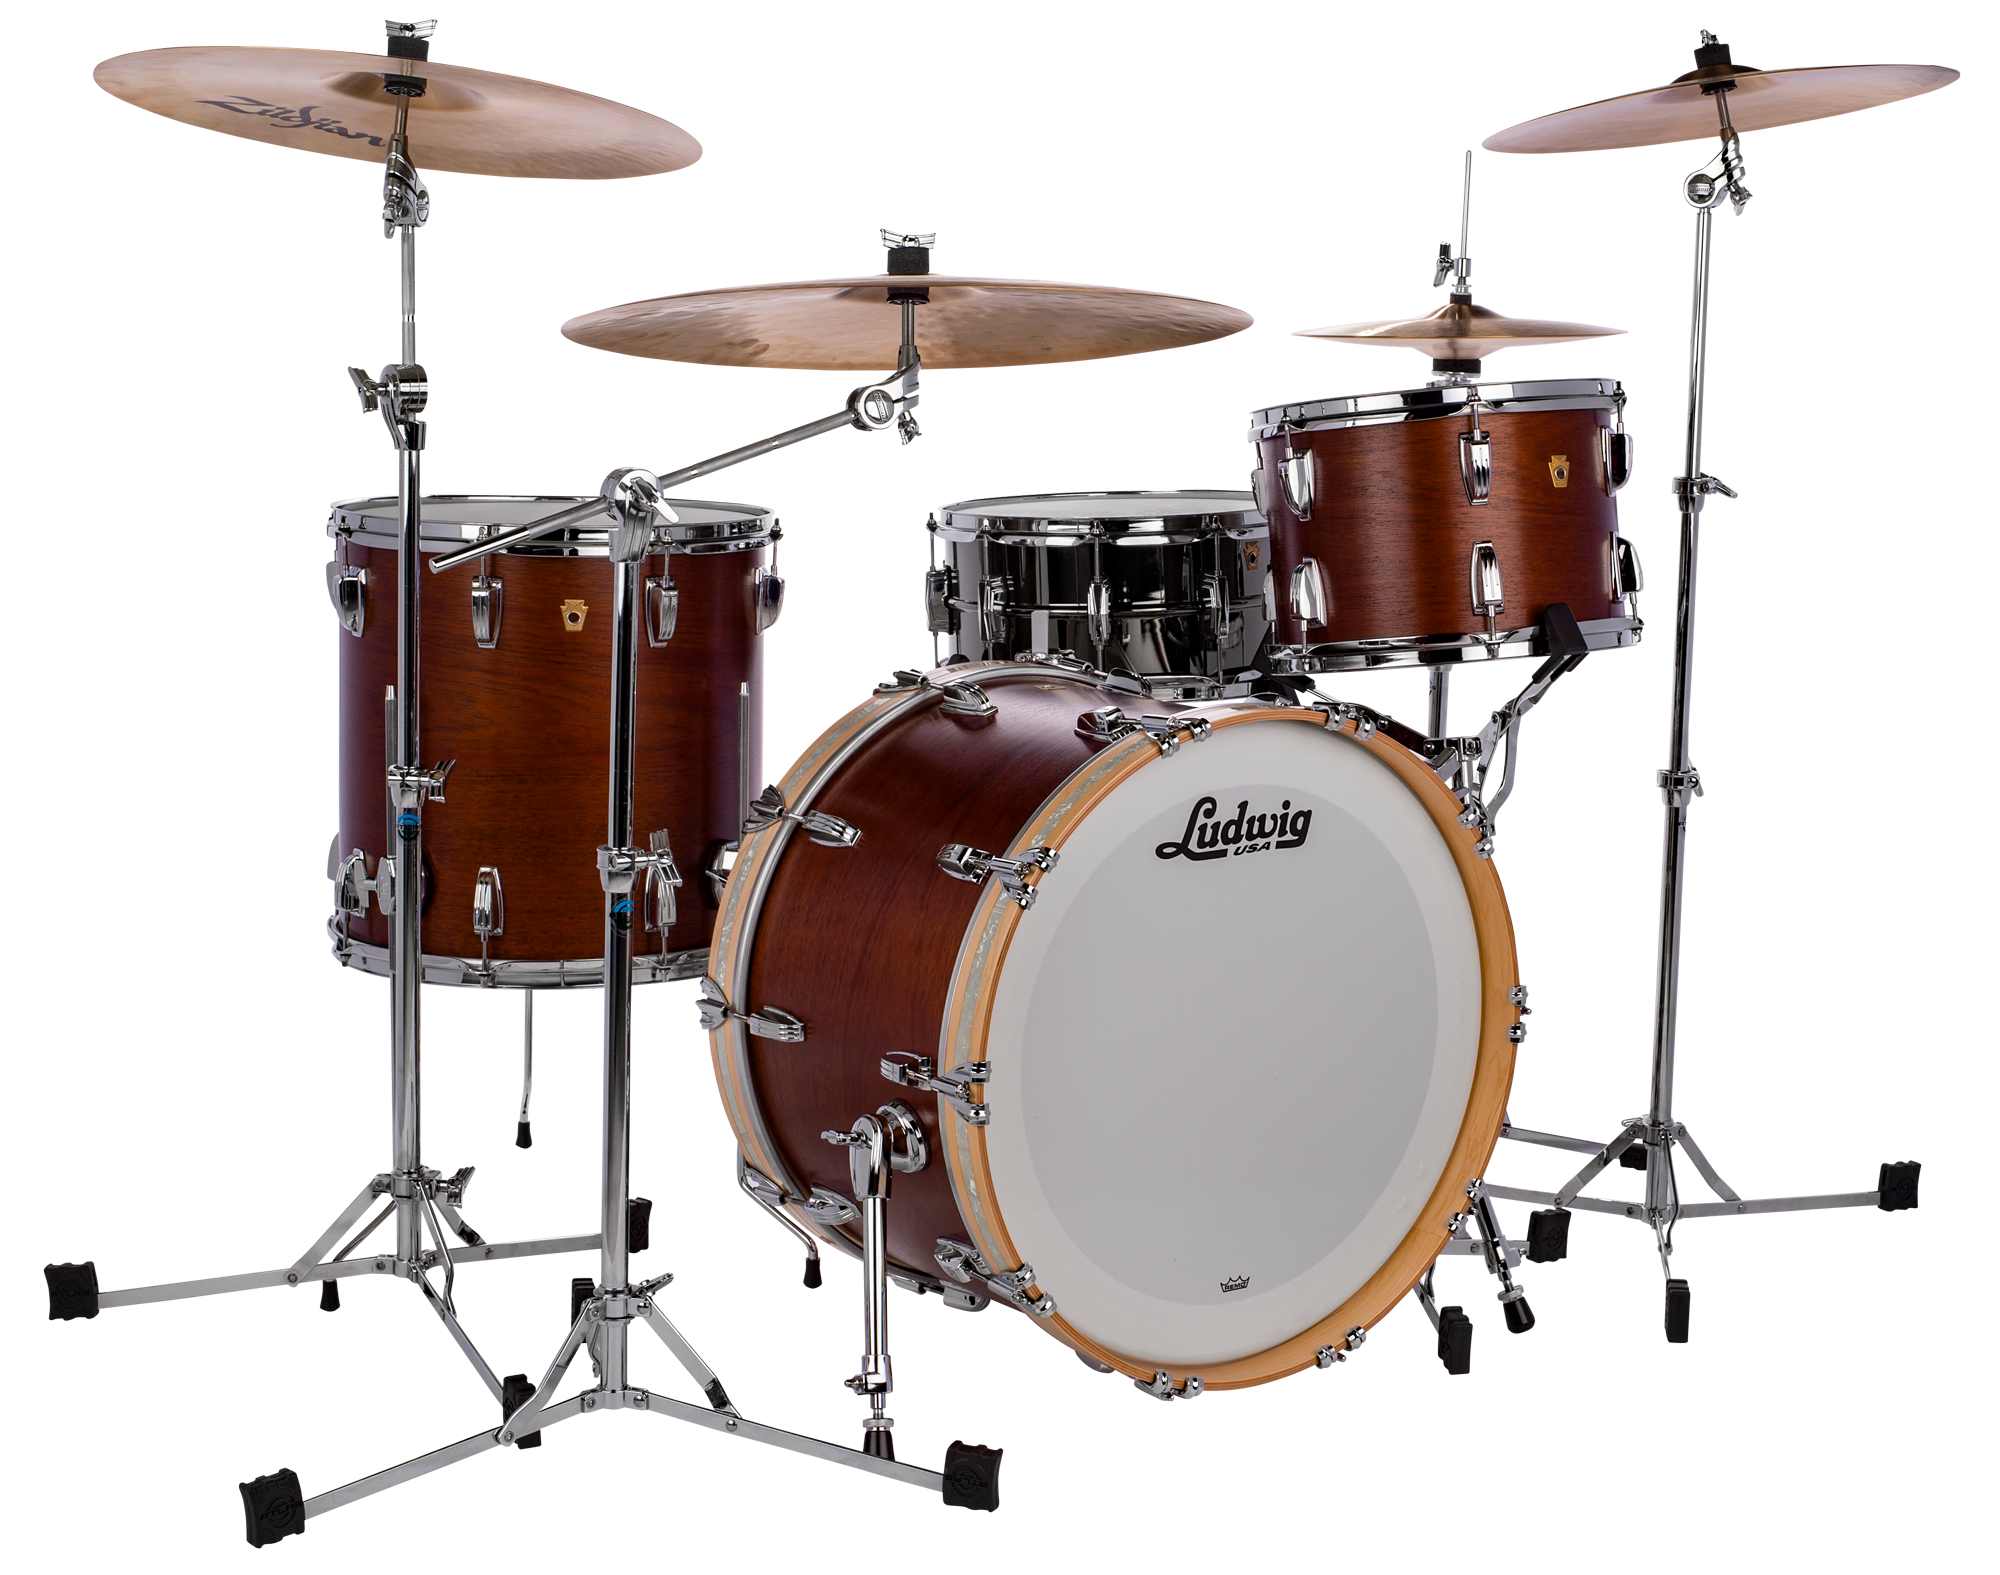 Ludwig Drum Sets